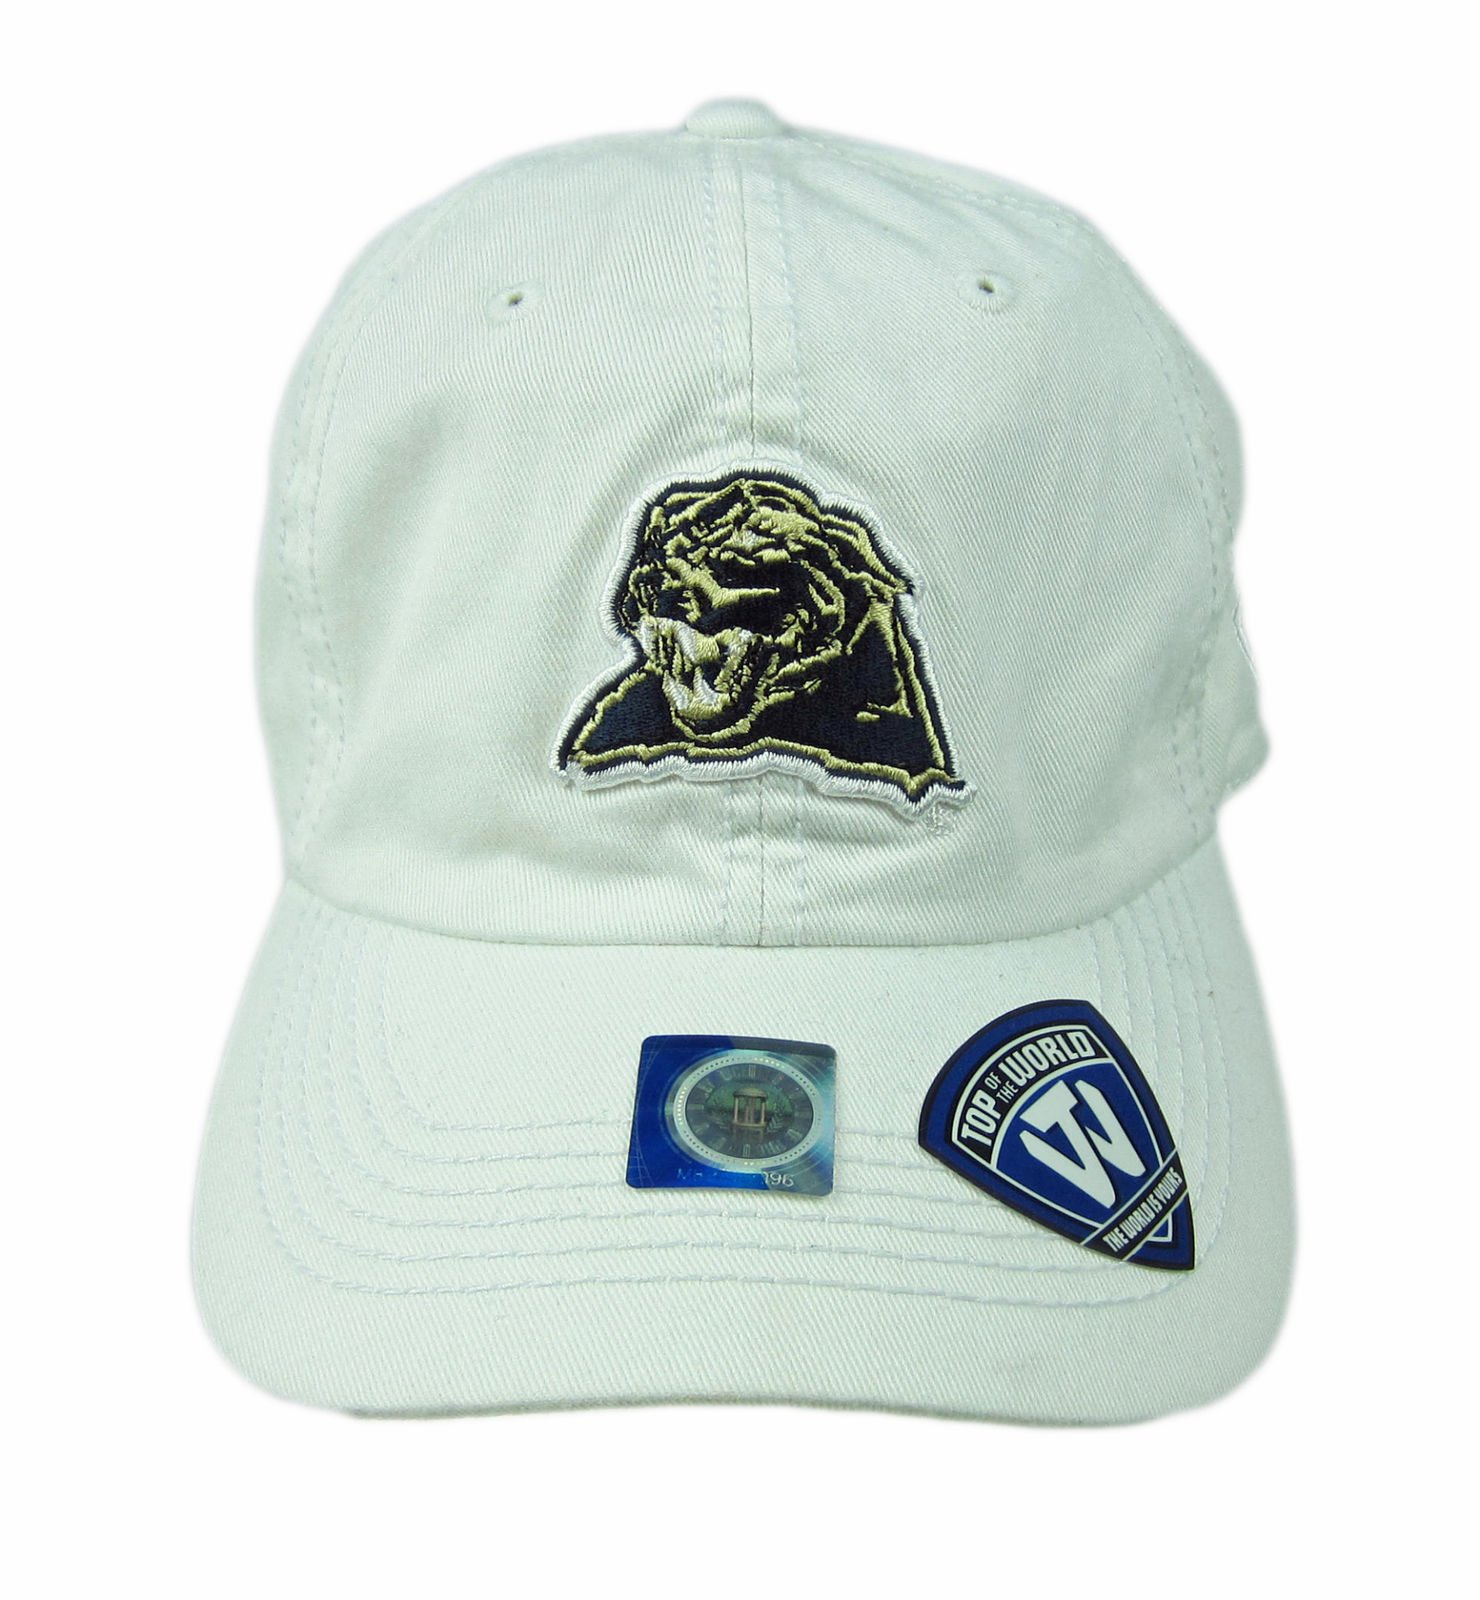 186ba82b ... Pittsburgh Panthers Adjustable Strapback Cap Hat White NWT. Product  Details